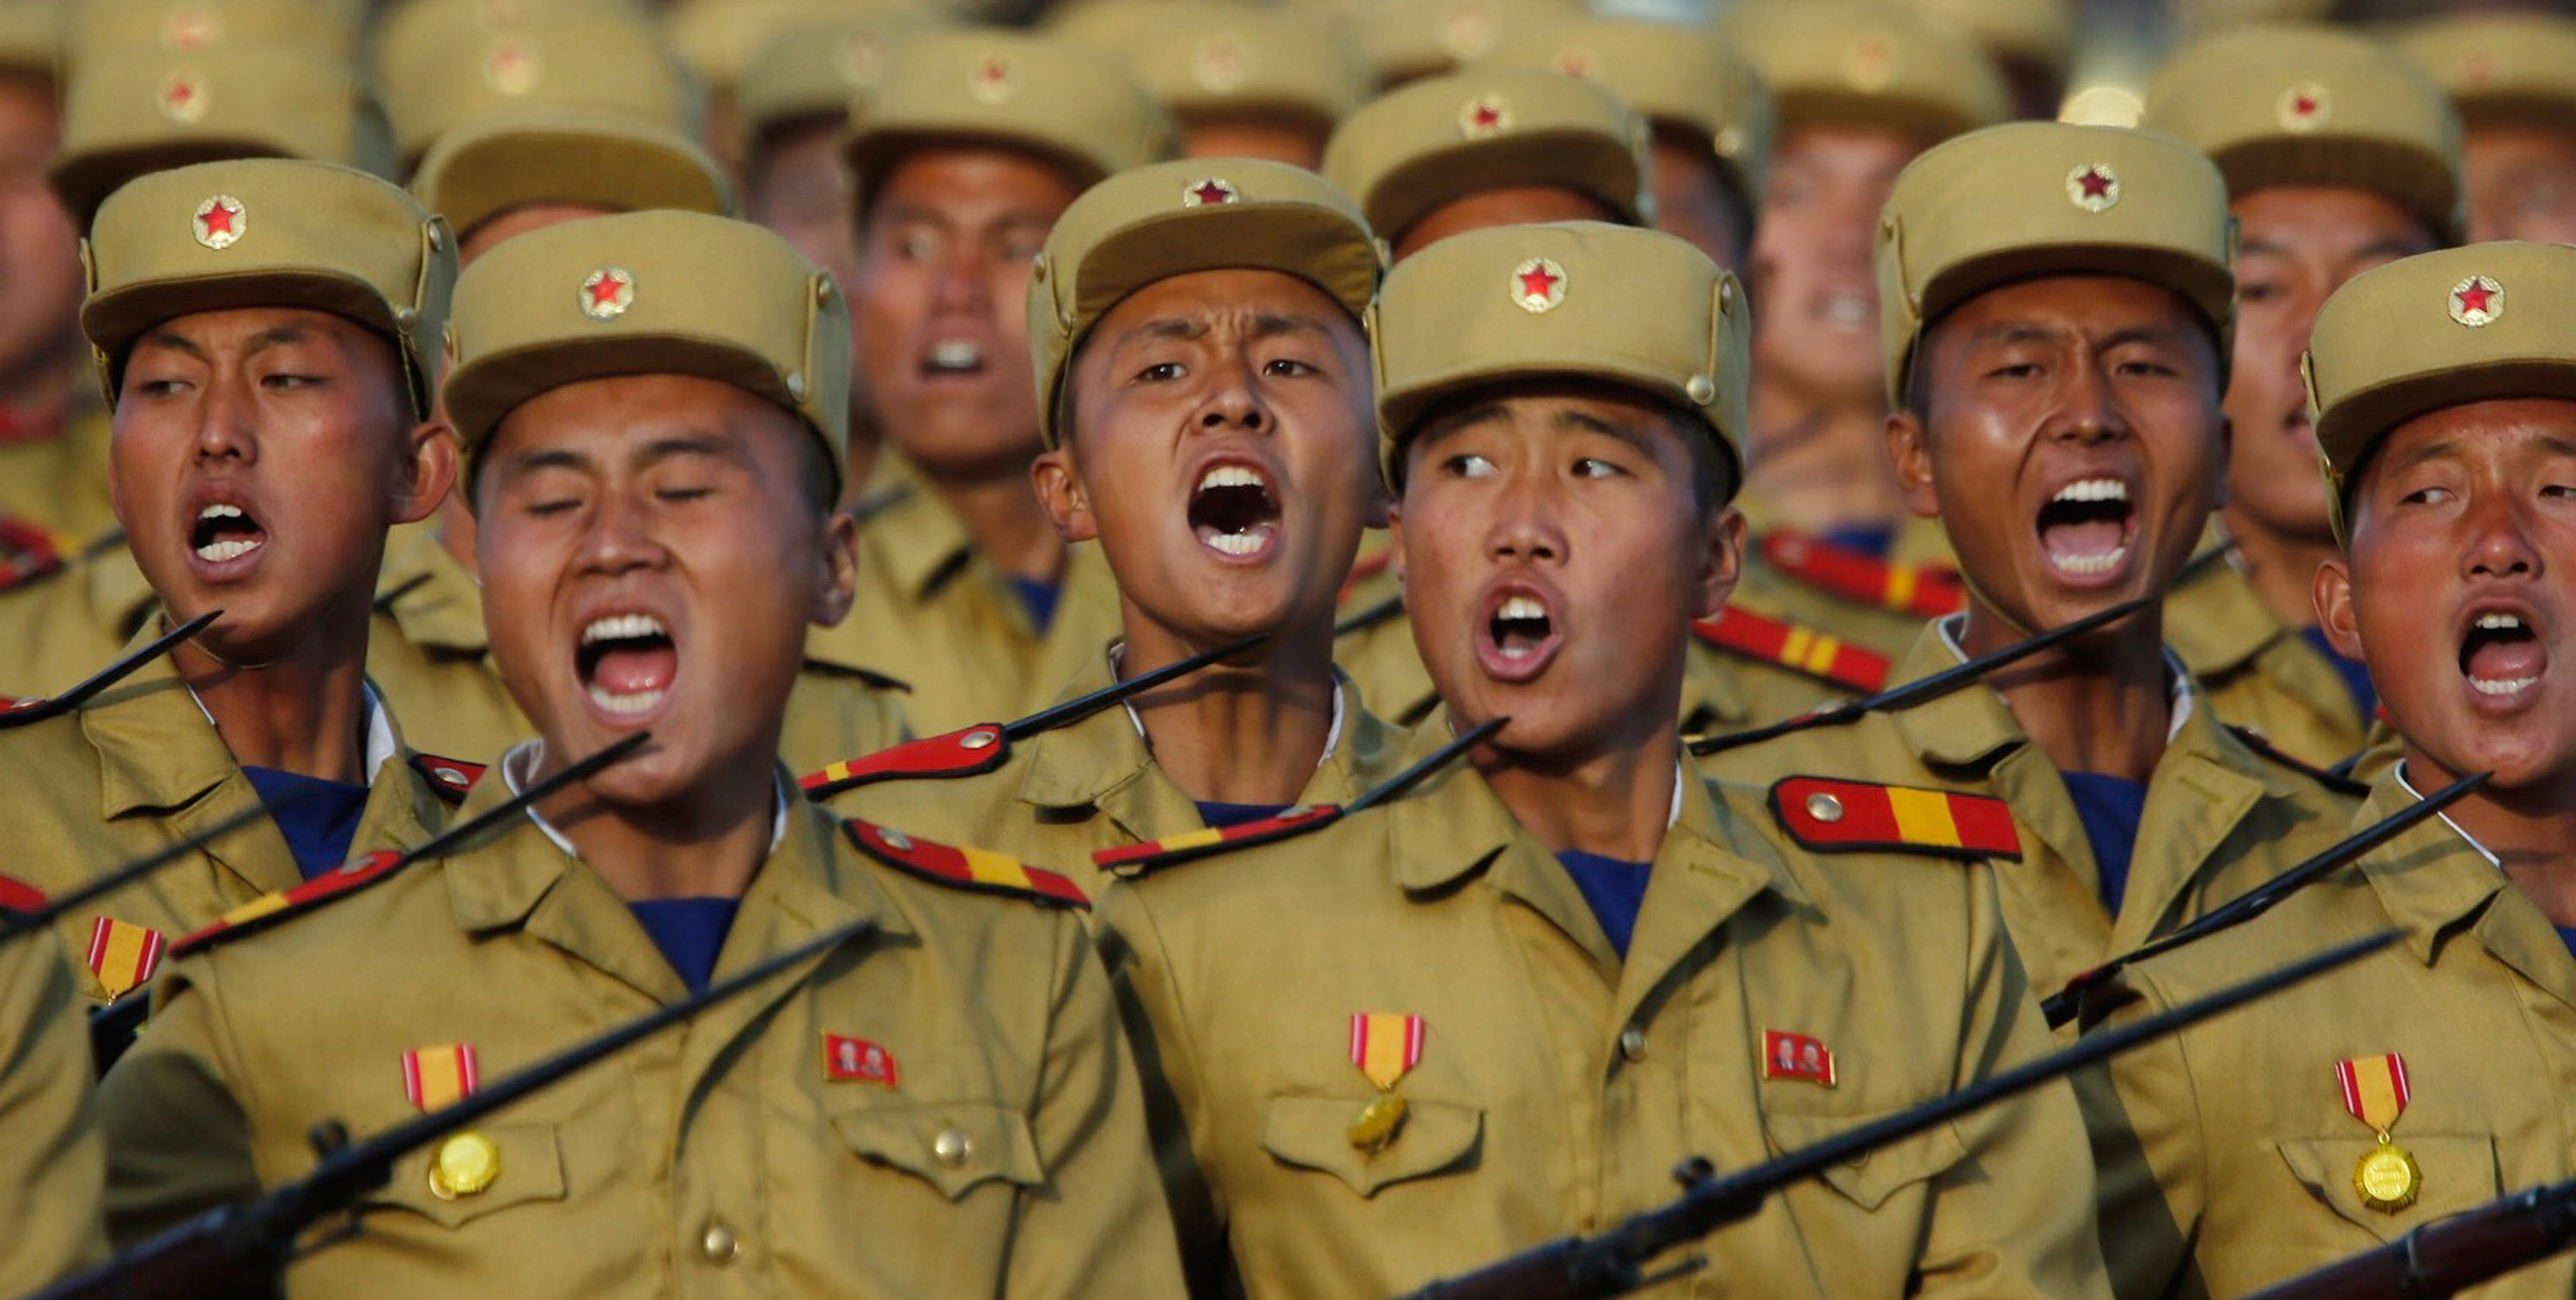 North Korean soldiers on parade in 2015 (Photo: Liu Xingzhe/Getty)